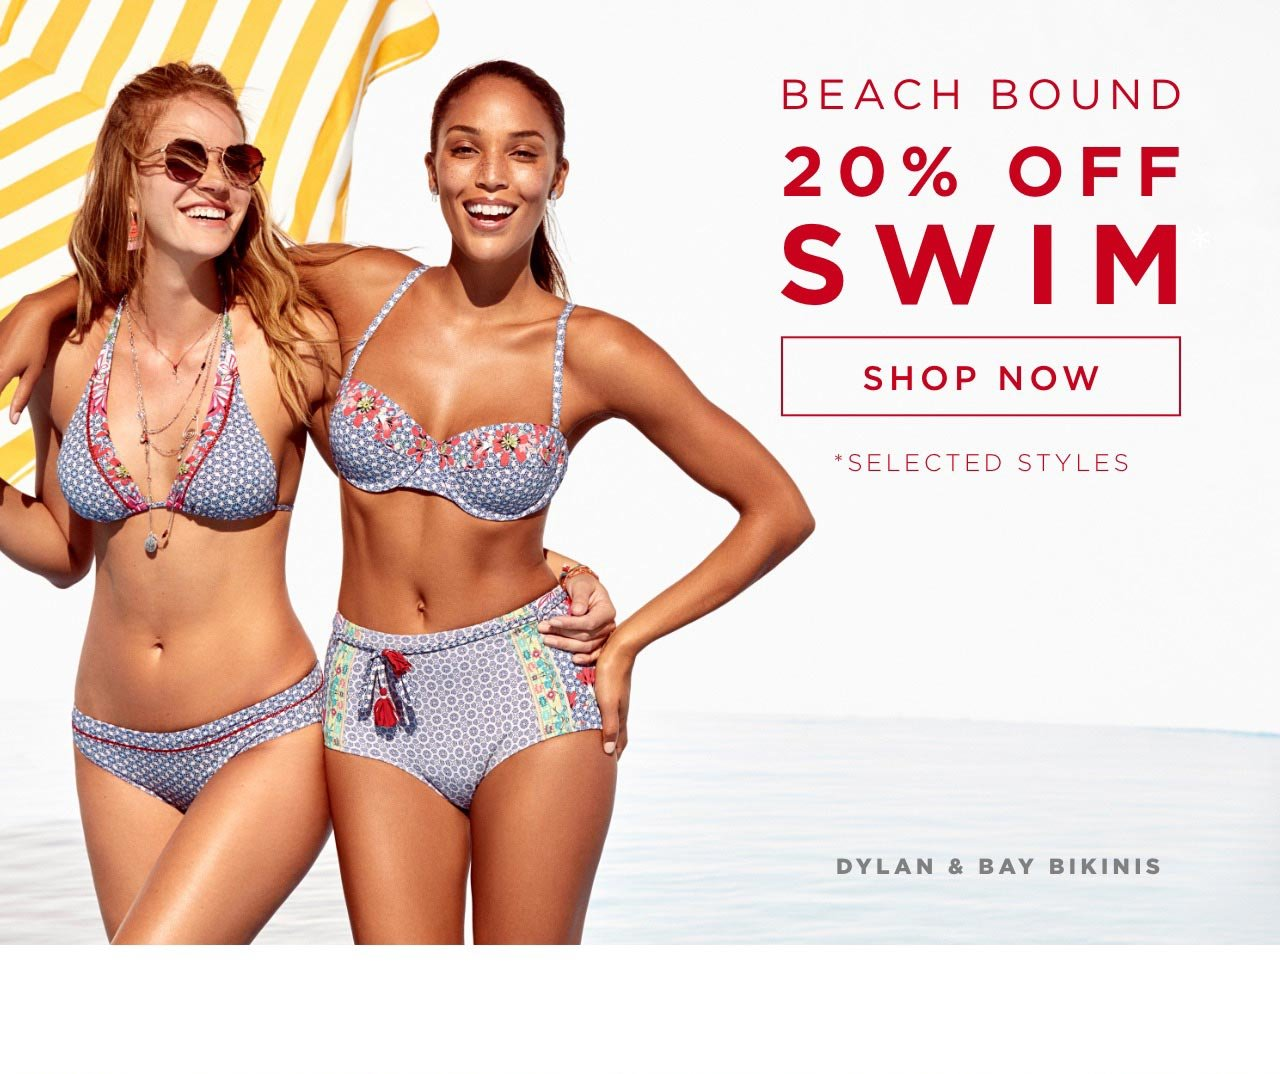 Beach Bound - 20% off Swim - Shop now. *Selected Styles - Cora Lace Front One Piece